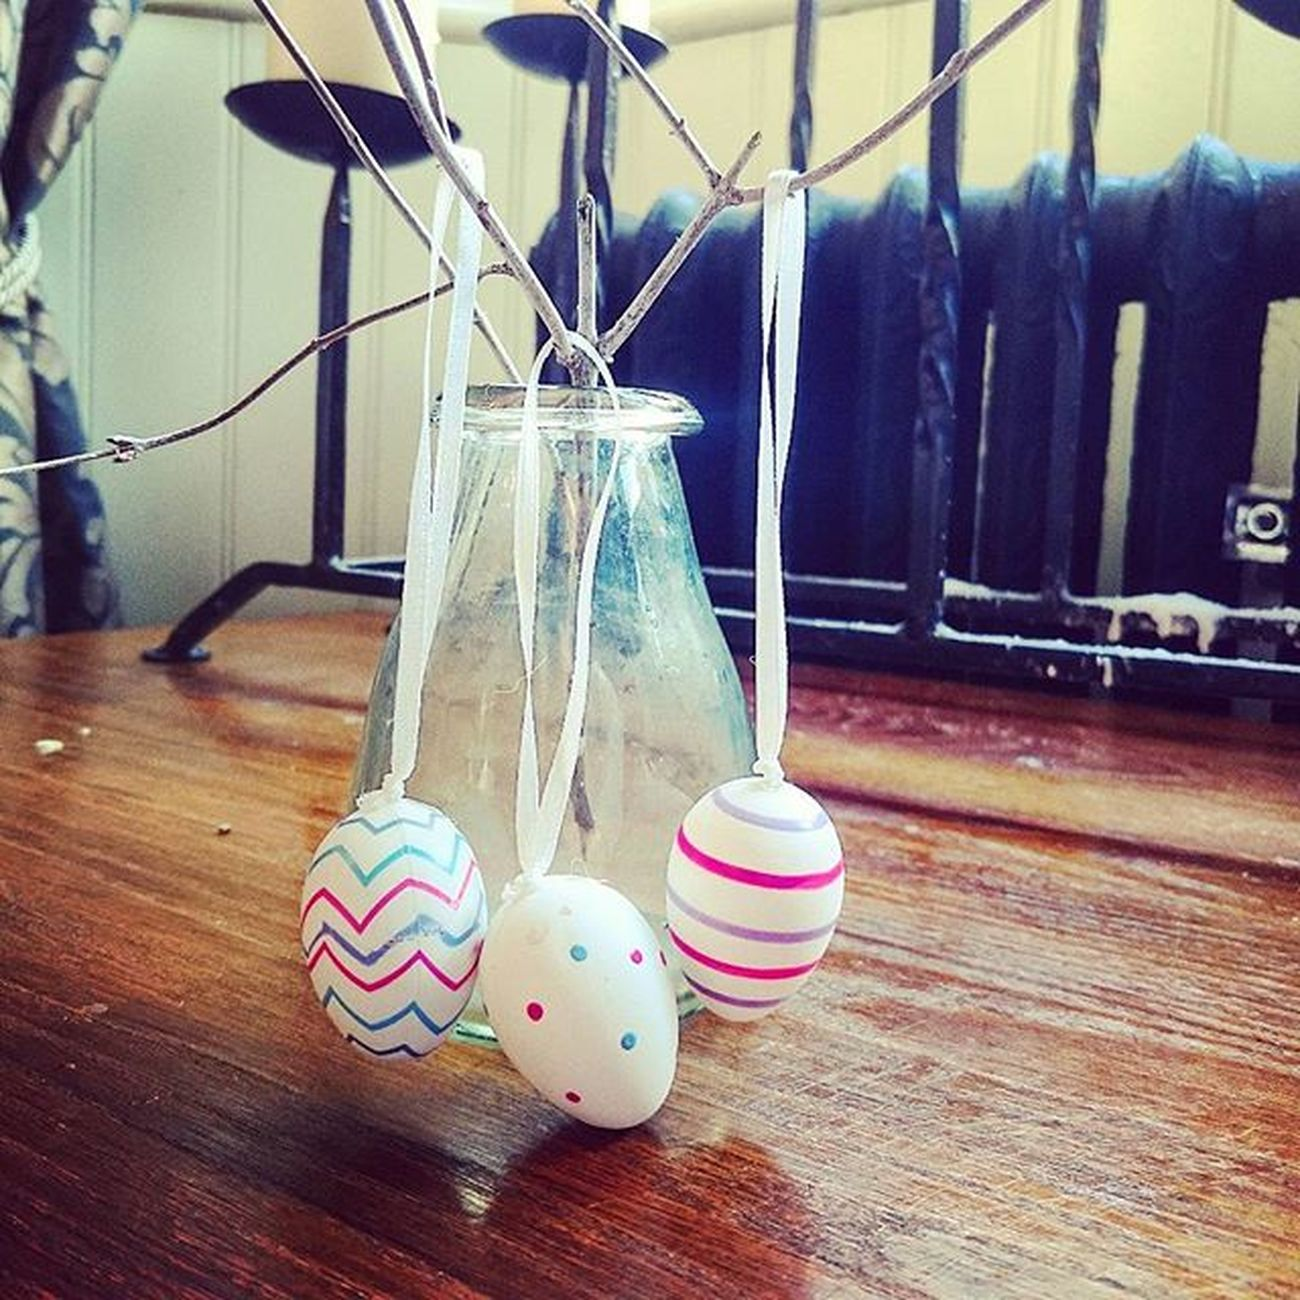 Some Easter decoration.. Easter Eggs Decoration TheCrown Aston Pub Decor Jar Glassjar Woodentable Art ICAN XPERIA